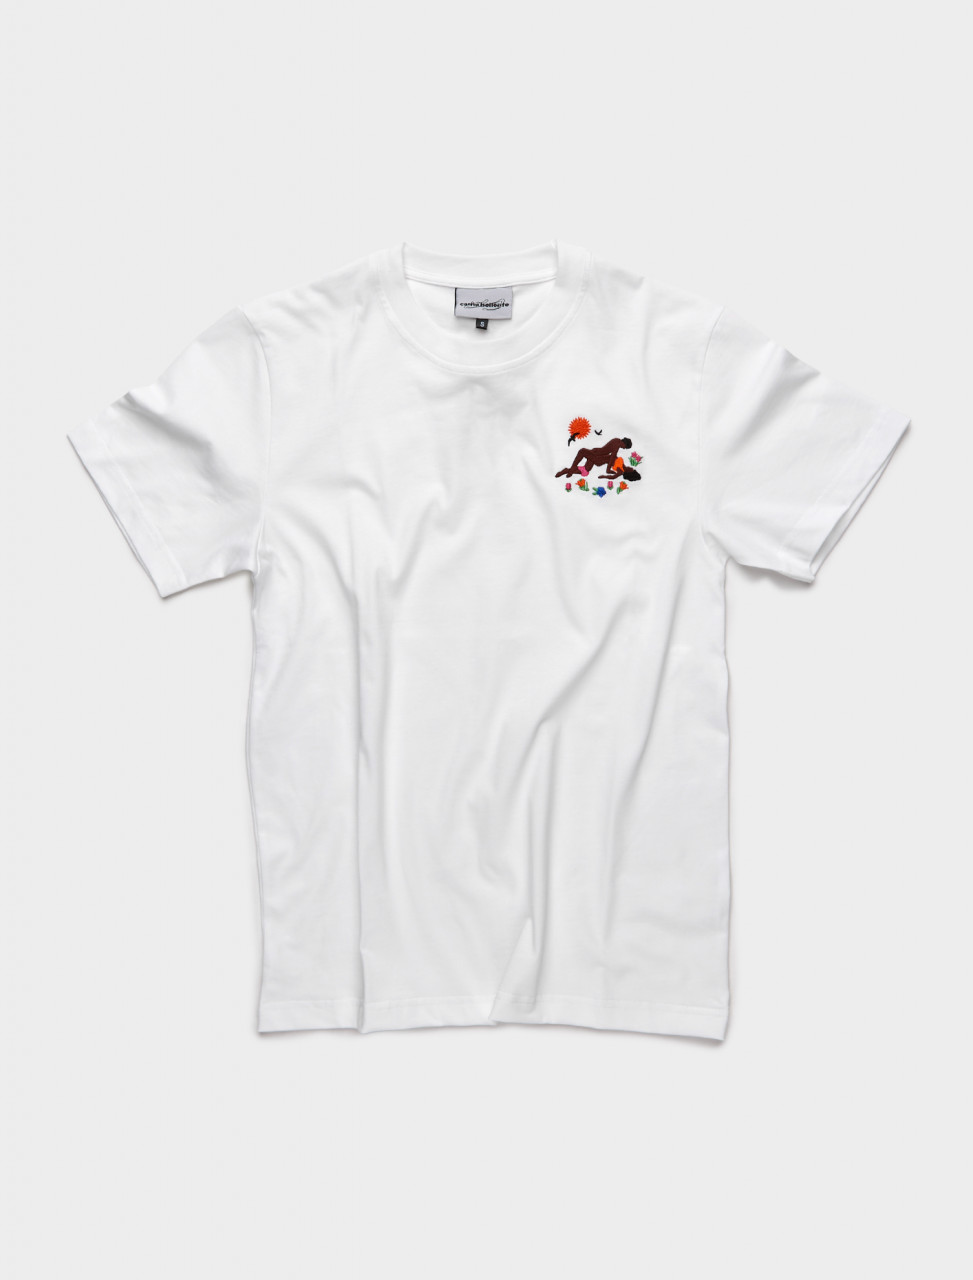 PRESS21TS02-W CARNE BOLLENTE BEG OF ROSES T SHIRT WHITE